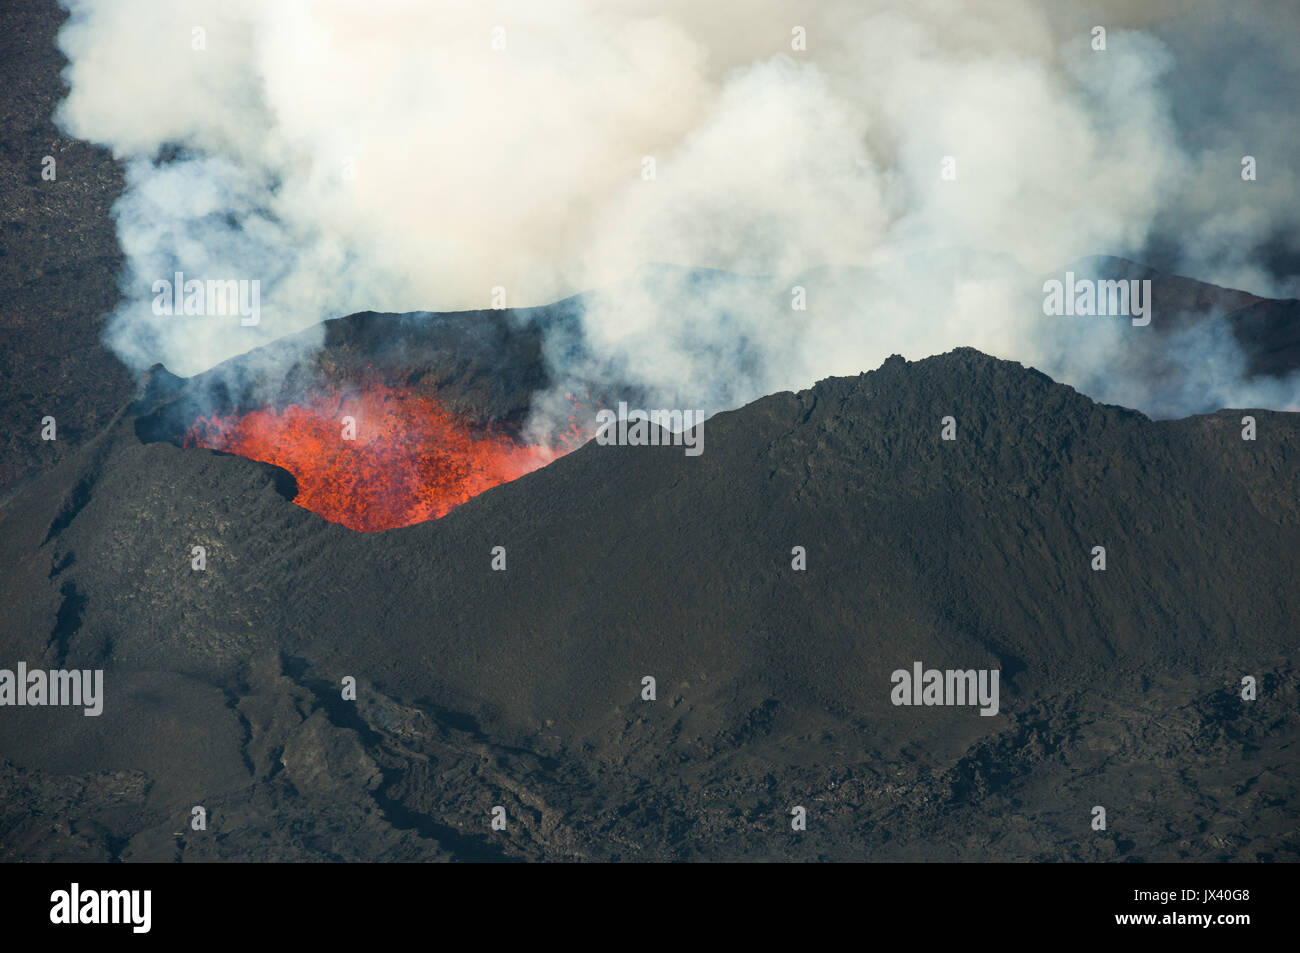 Aerial view of Bardarbunga Holuhraun volcano caldera lava flow in Iceland, October 2014 Stock Photo